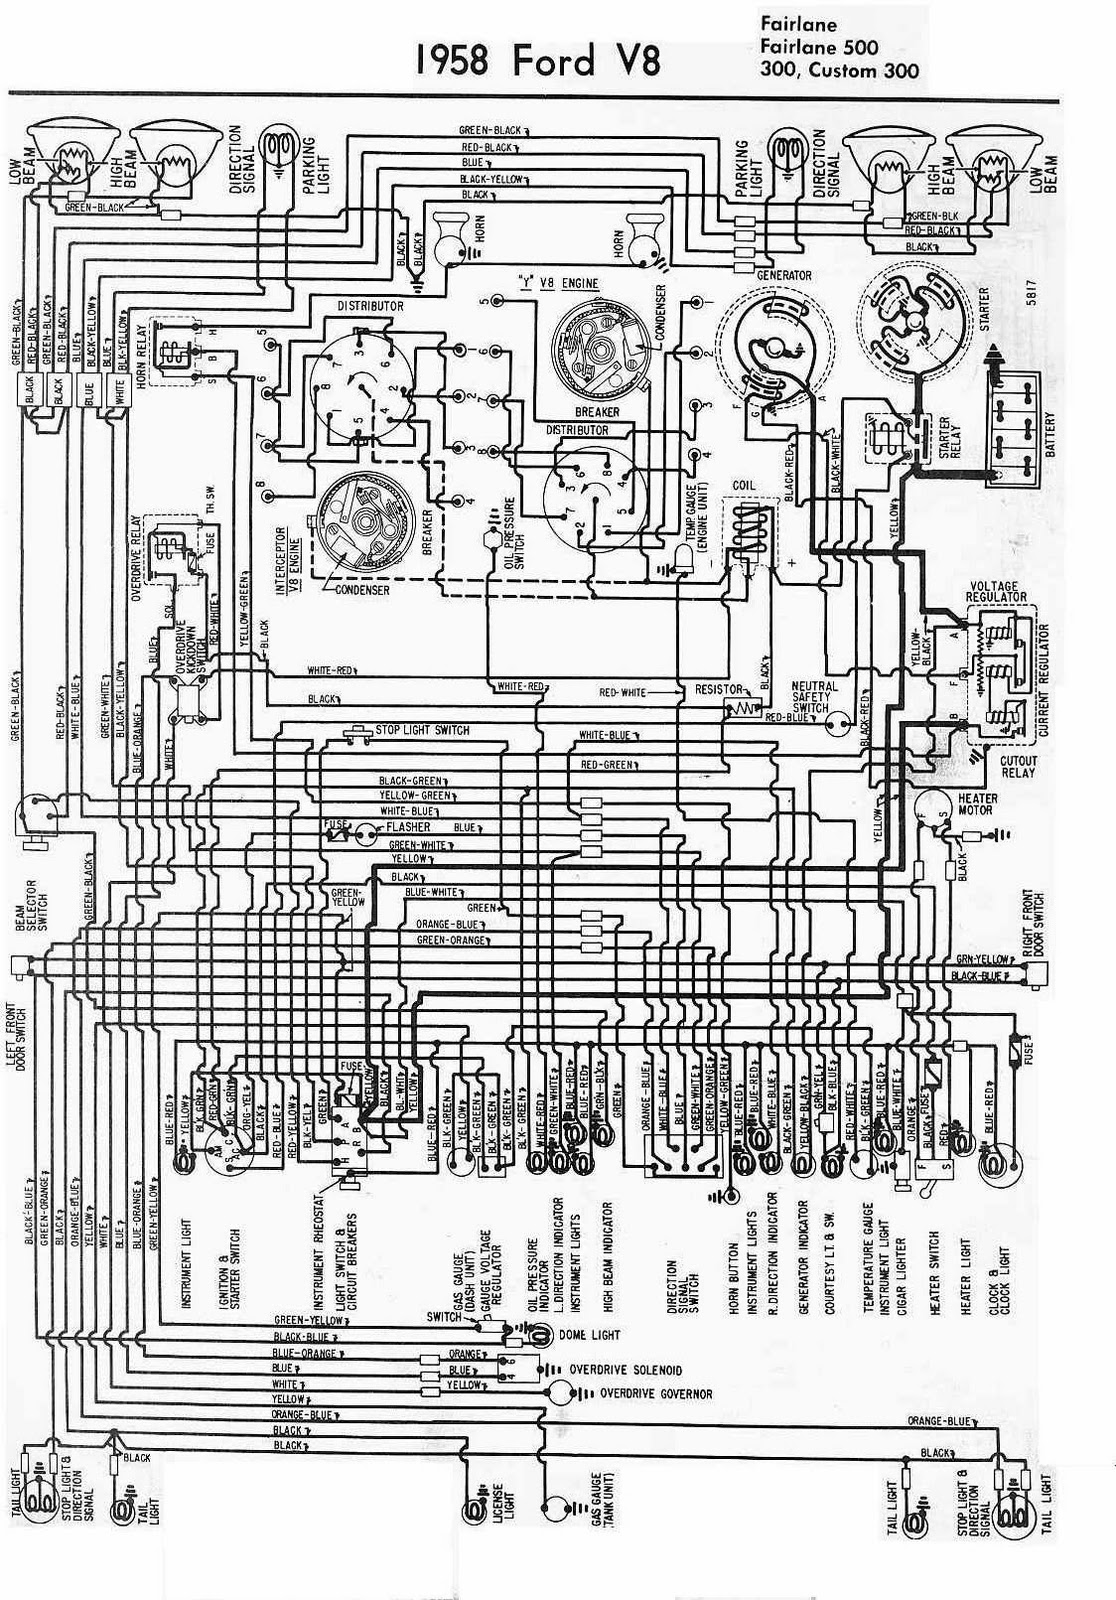 ford v8 wiring diagram wiring diagram for you ford v 8 ignition wiring [ 1116 x 1600 Pixel ]